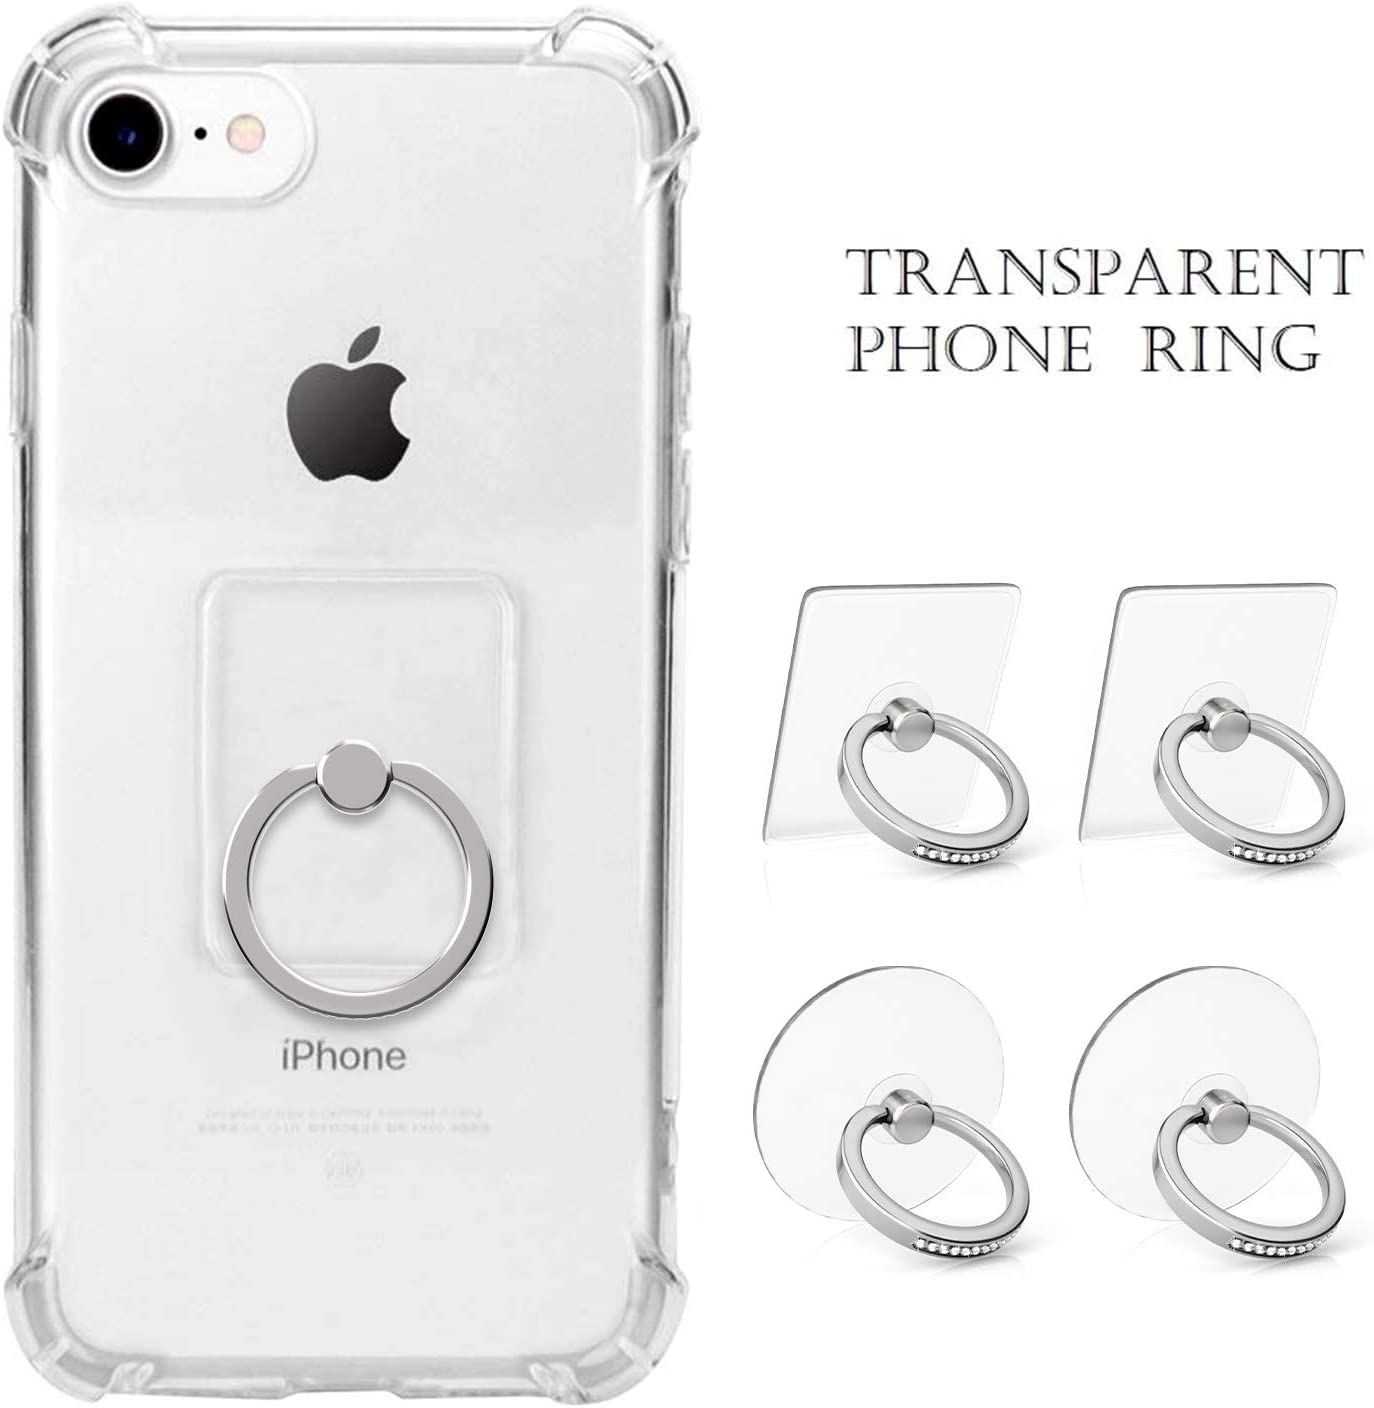 4 Silver Diamond Transparent Phone Ring Holder with Bling 360 Rotation Finger Ring Kickstand Phone Ring Grip for Almost All Phones Cell Phone Ring Holder Stand